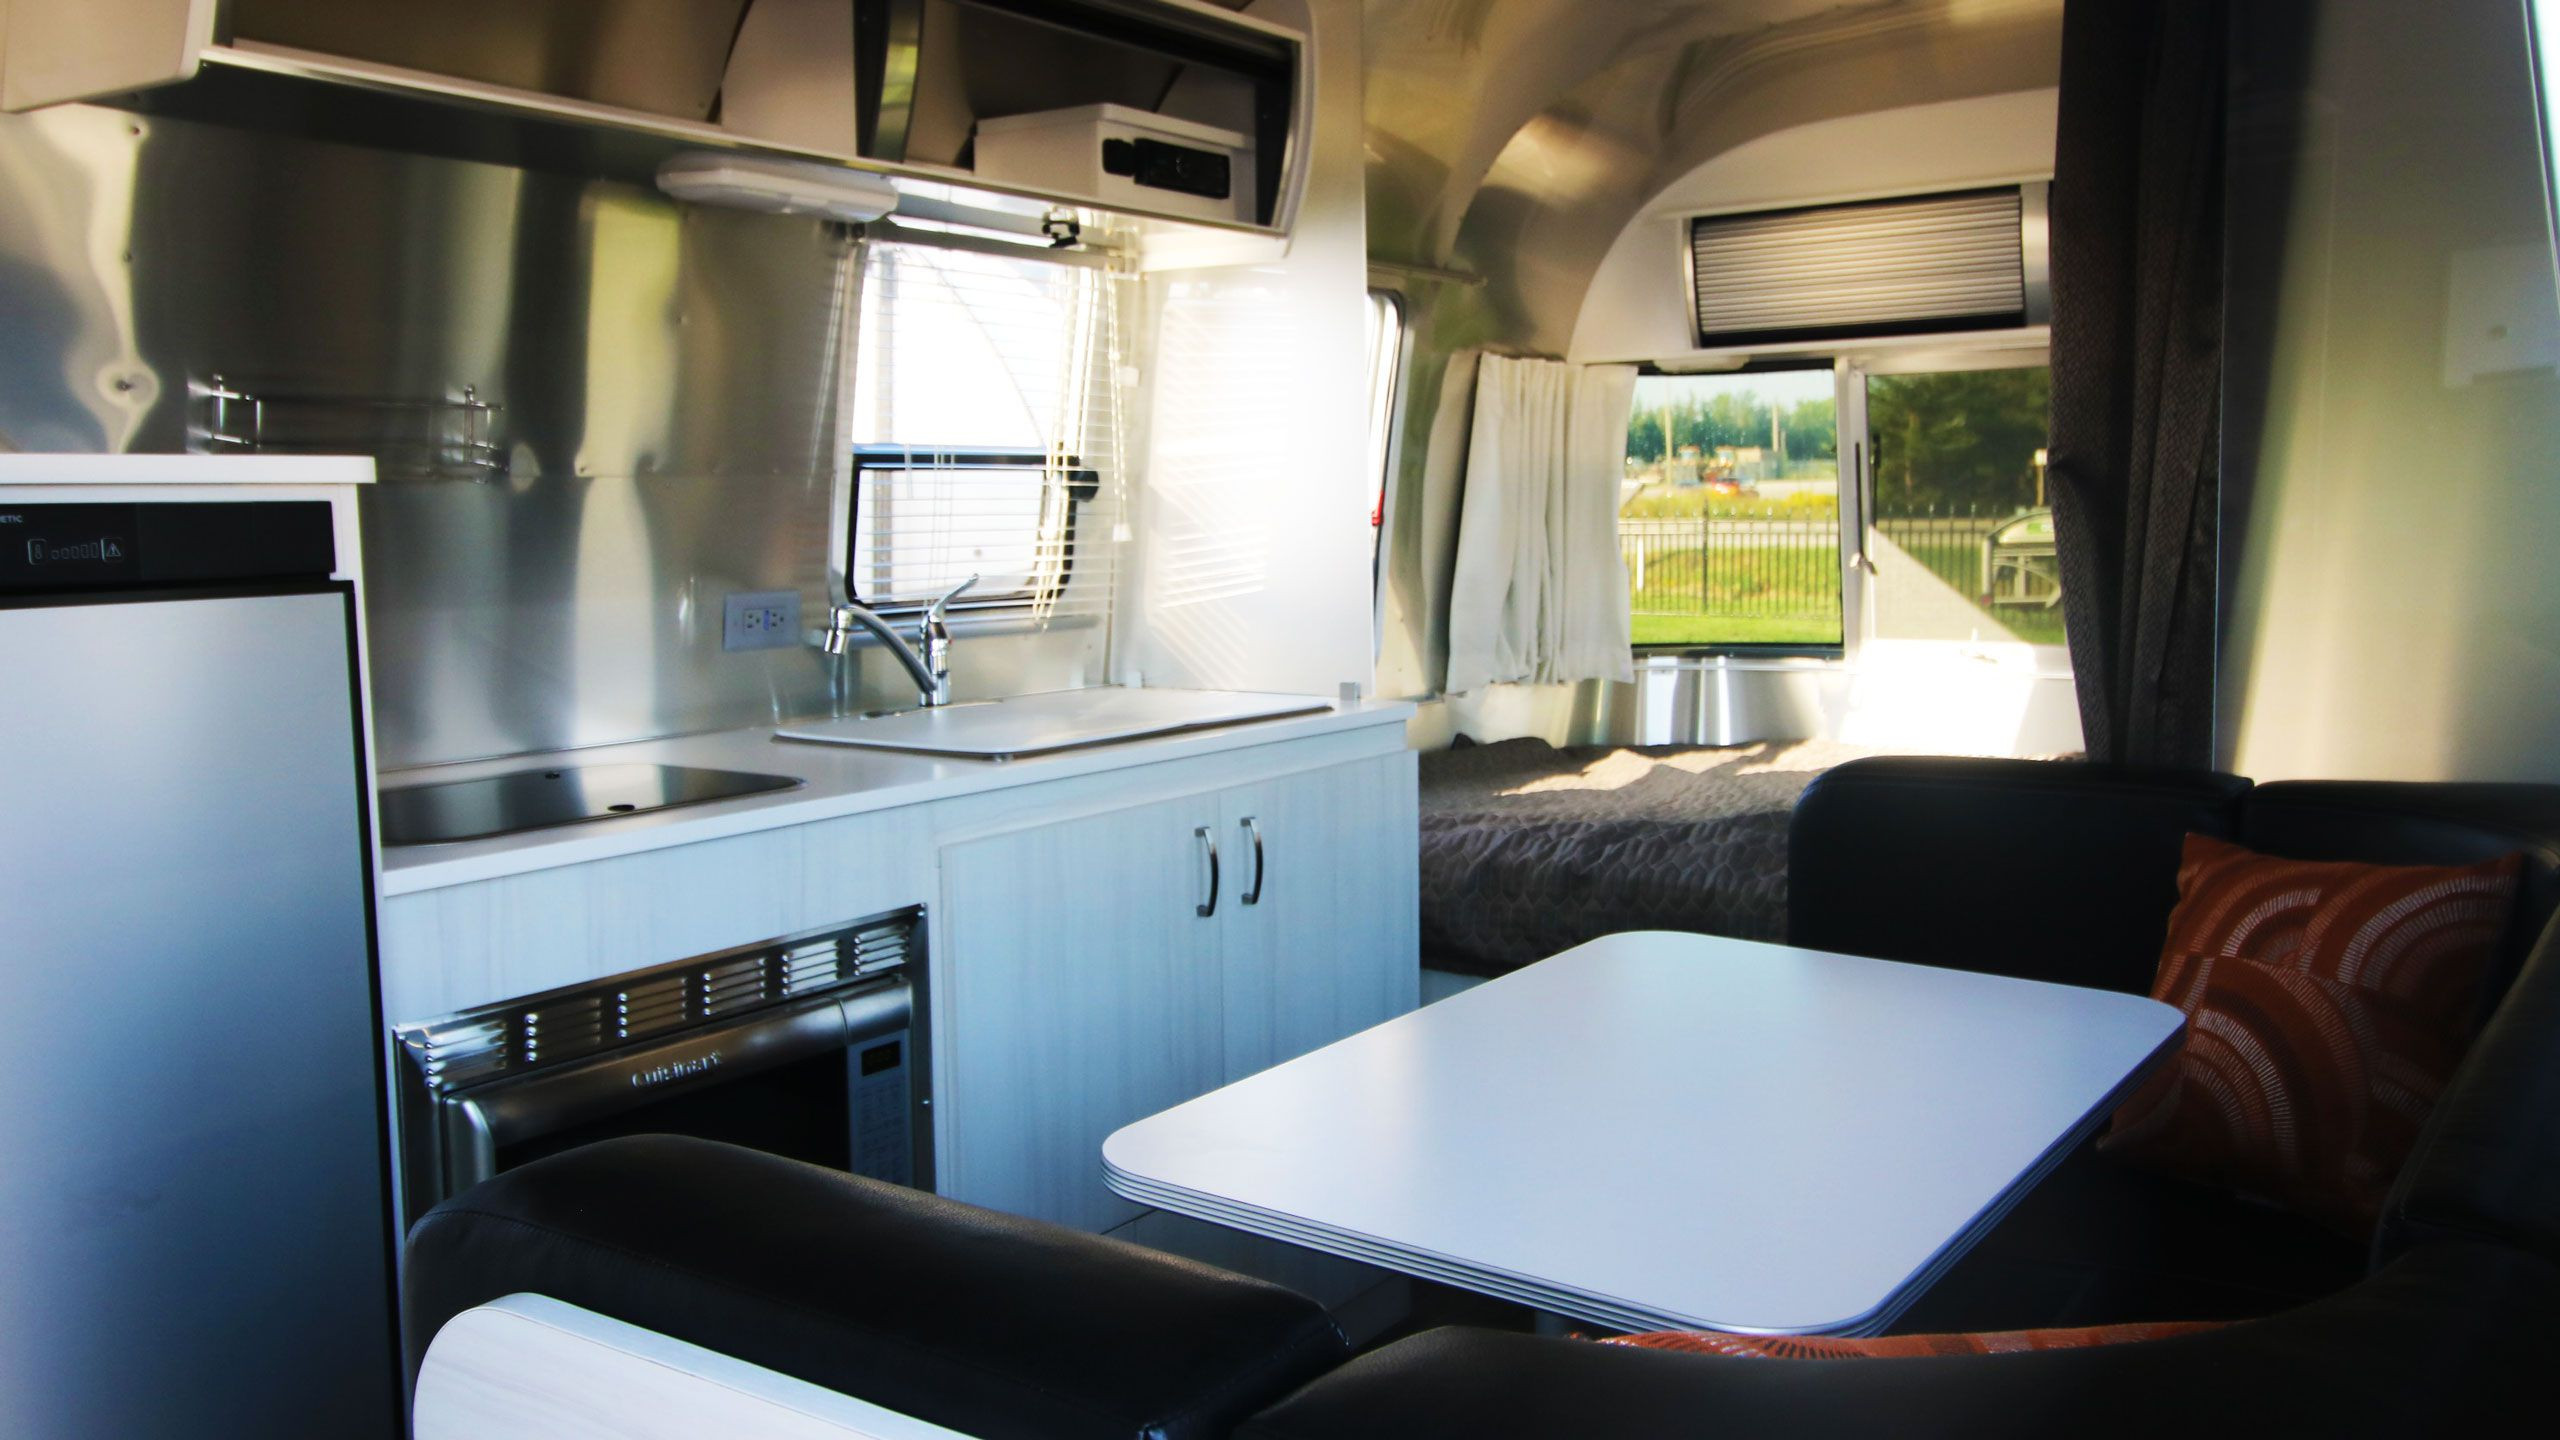 View Can-Am RV Centre RVs for sale | 1 - 10 of 148 units